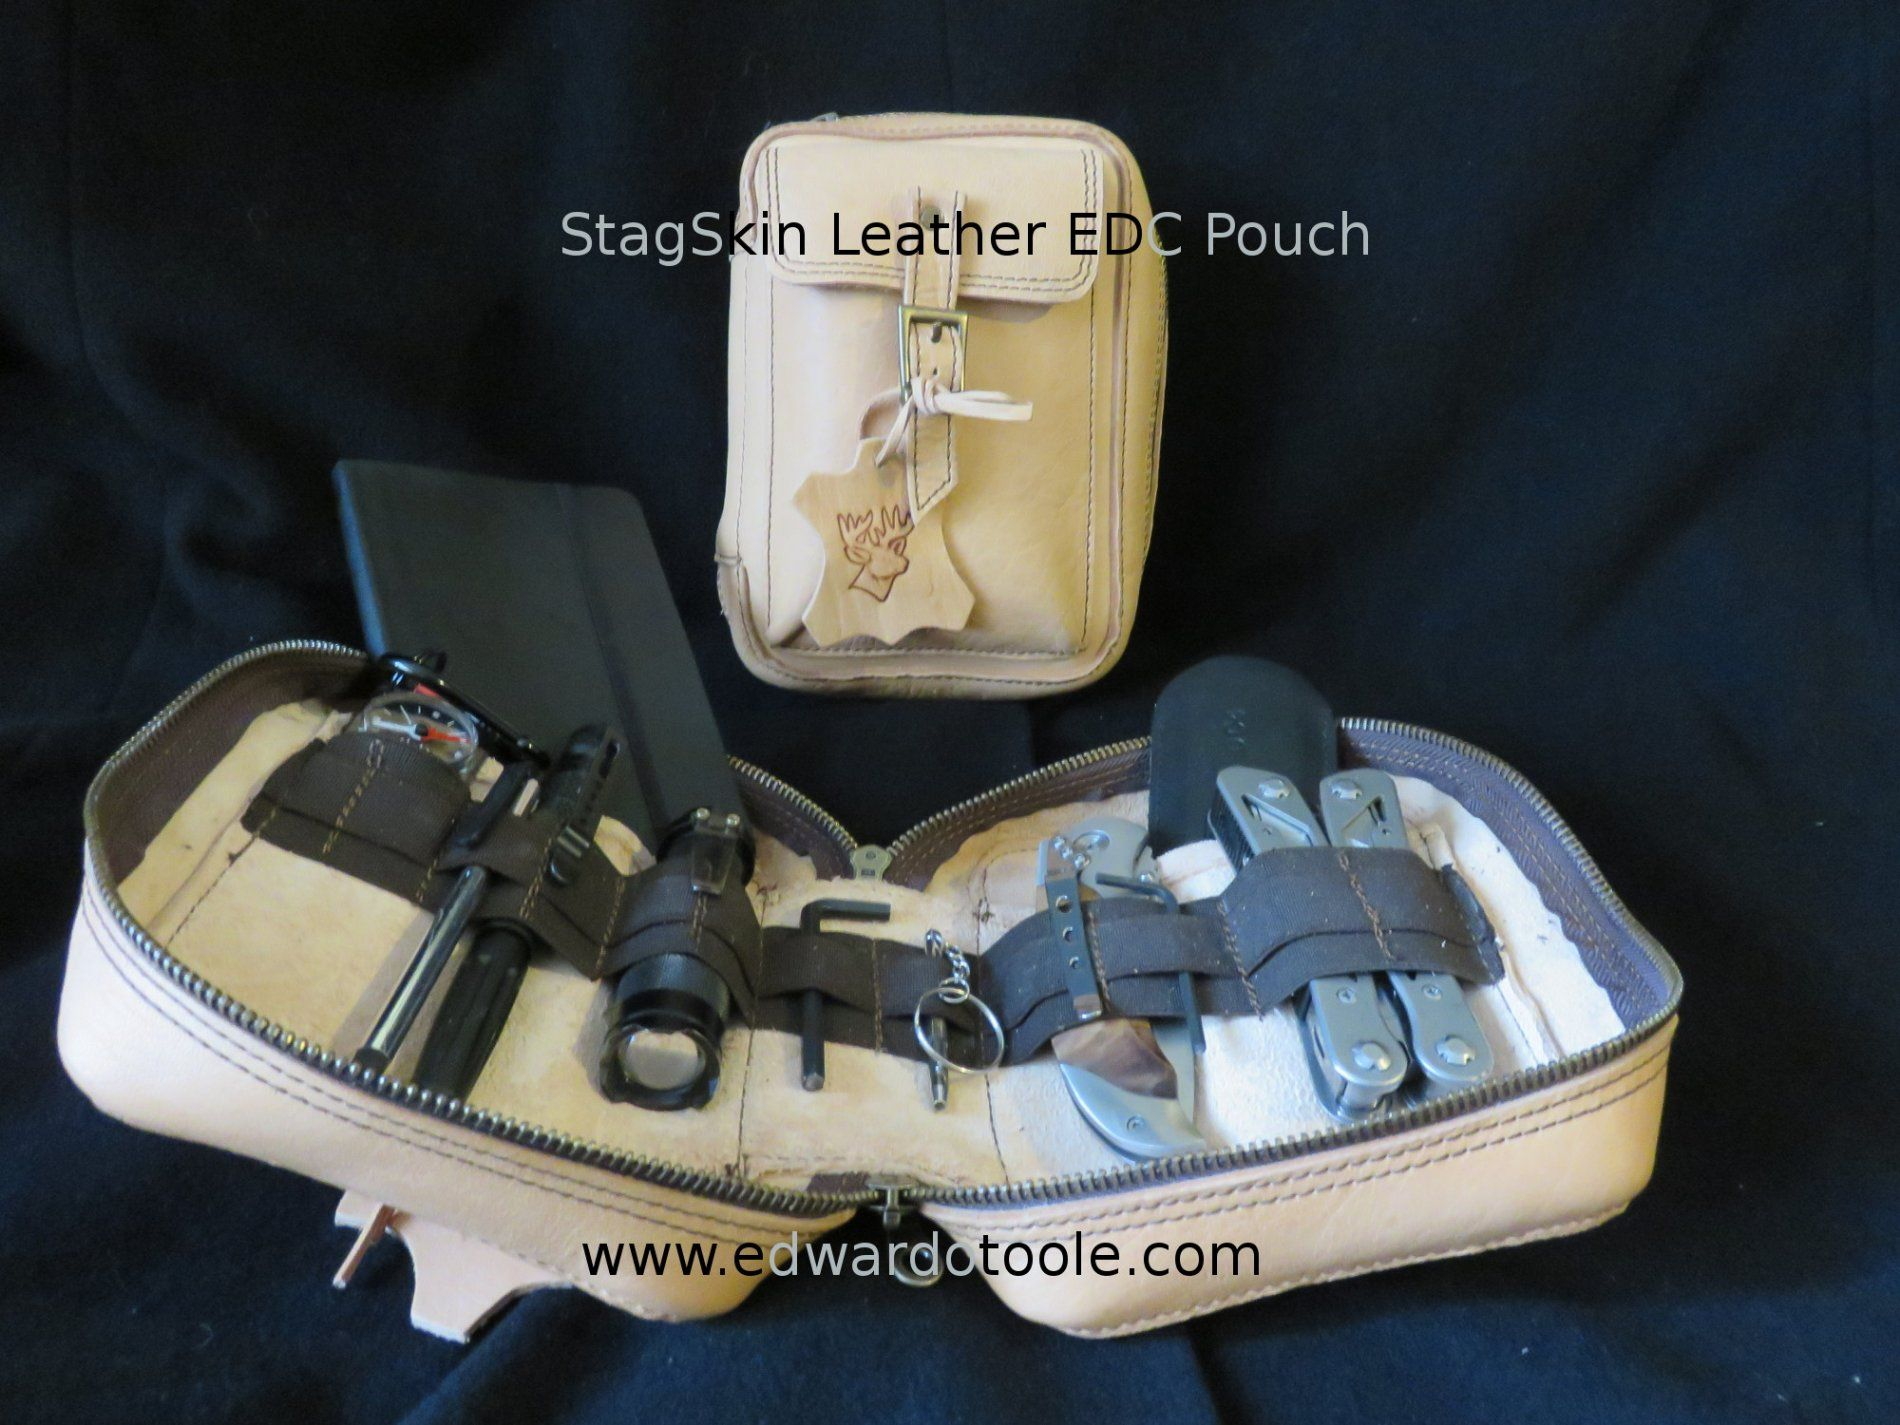 The StagSkin Leather EDC Pouch. In the boardroom or in the bush. Practical. Natural. Dapper. For when you grow out of mass-produced made-in-Asia nylon pouches. http://www.edwardotoole.com/stagskin_edc.html